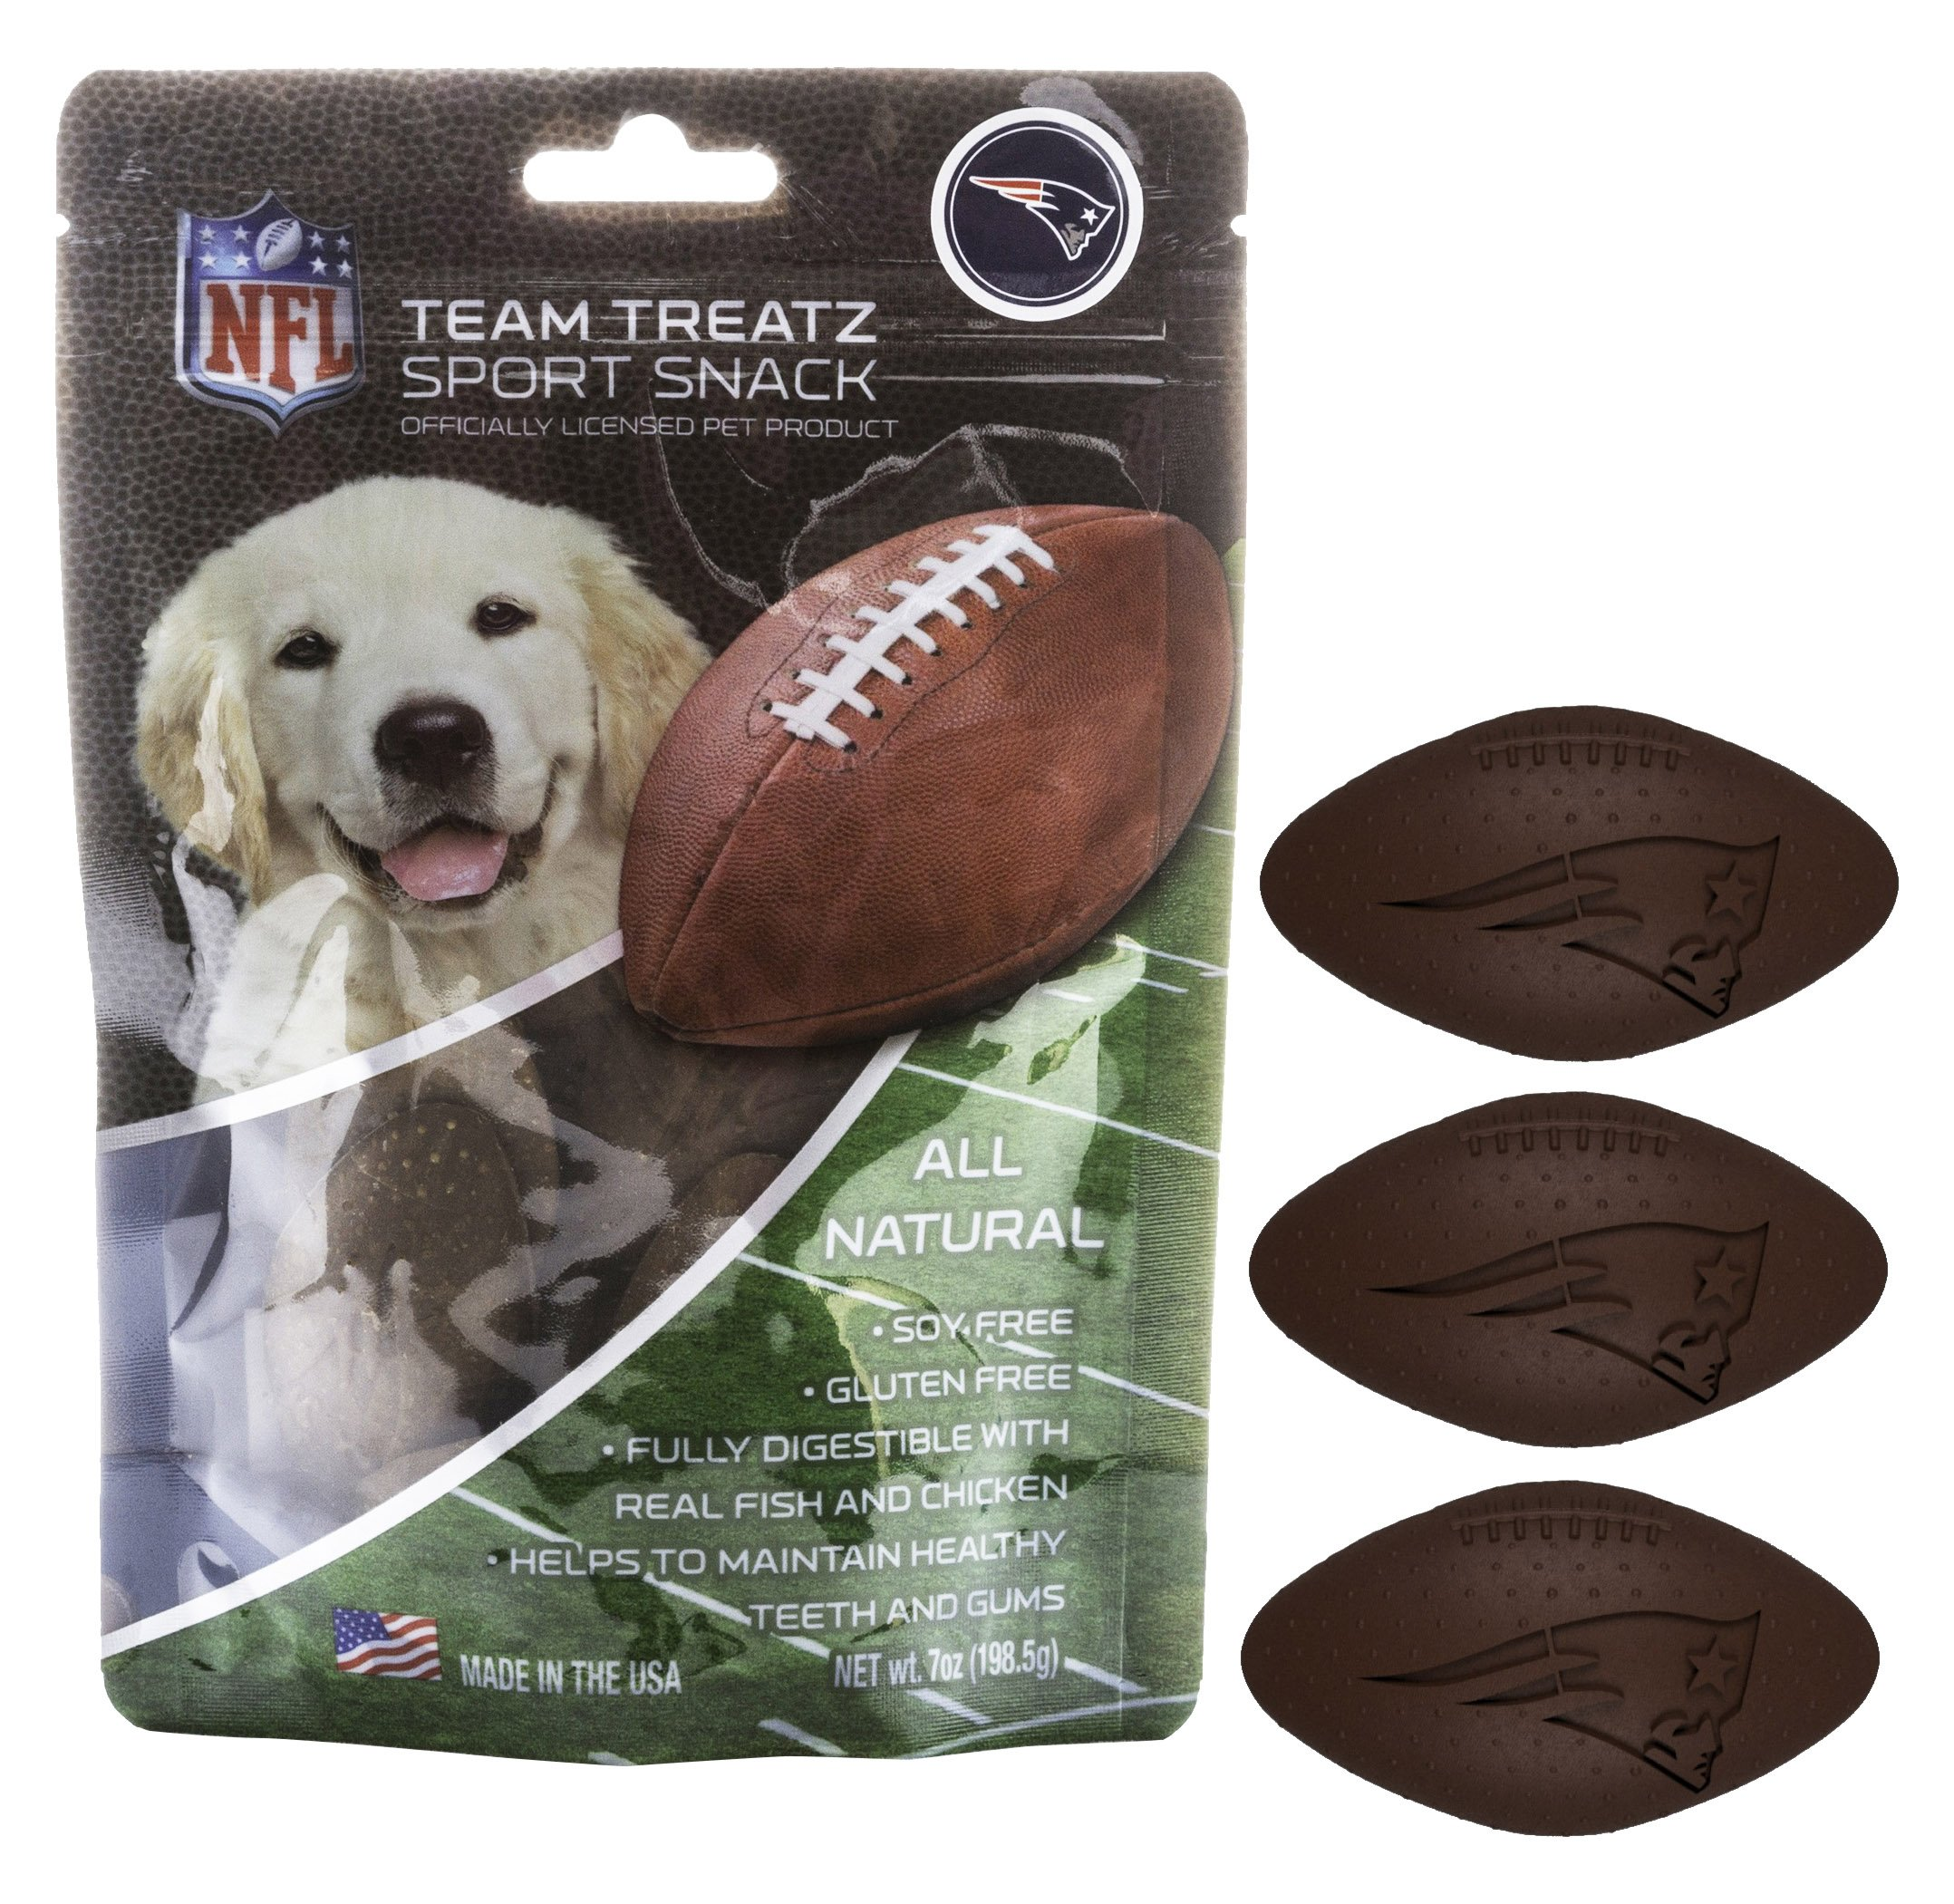 Pets First NFL NEW ENGLAND PATRIOTS DOG FOOD Snack Treat Bone-Free. Dog Training Cookies Tasty Biscuits for Dog Rewards. Provides Healthy Dog Teeth & Gum, Soy-Free, Gluten-Free.